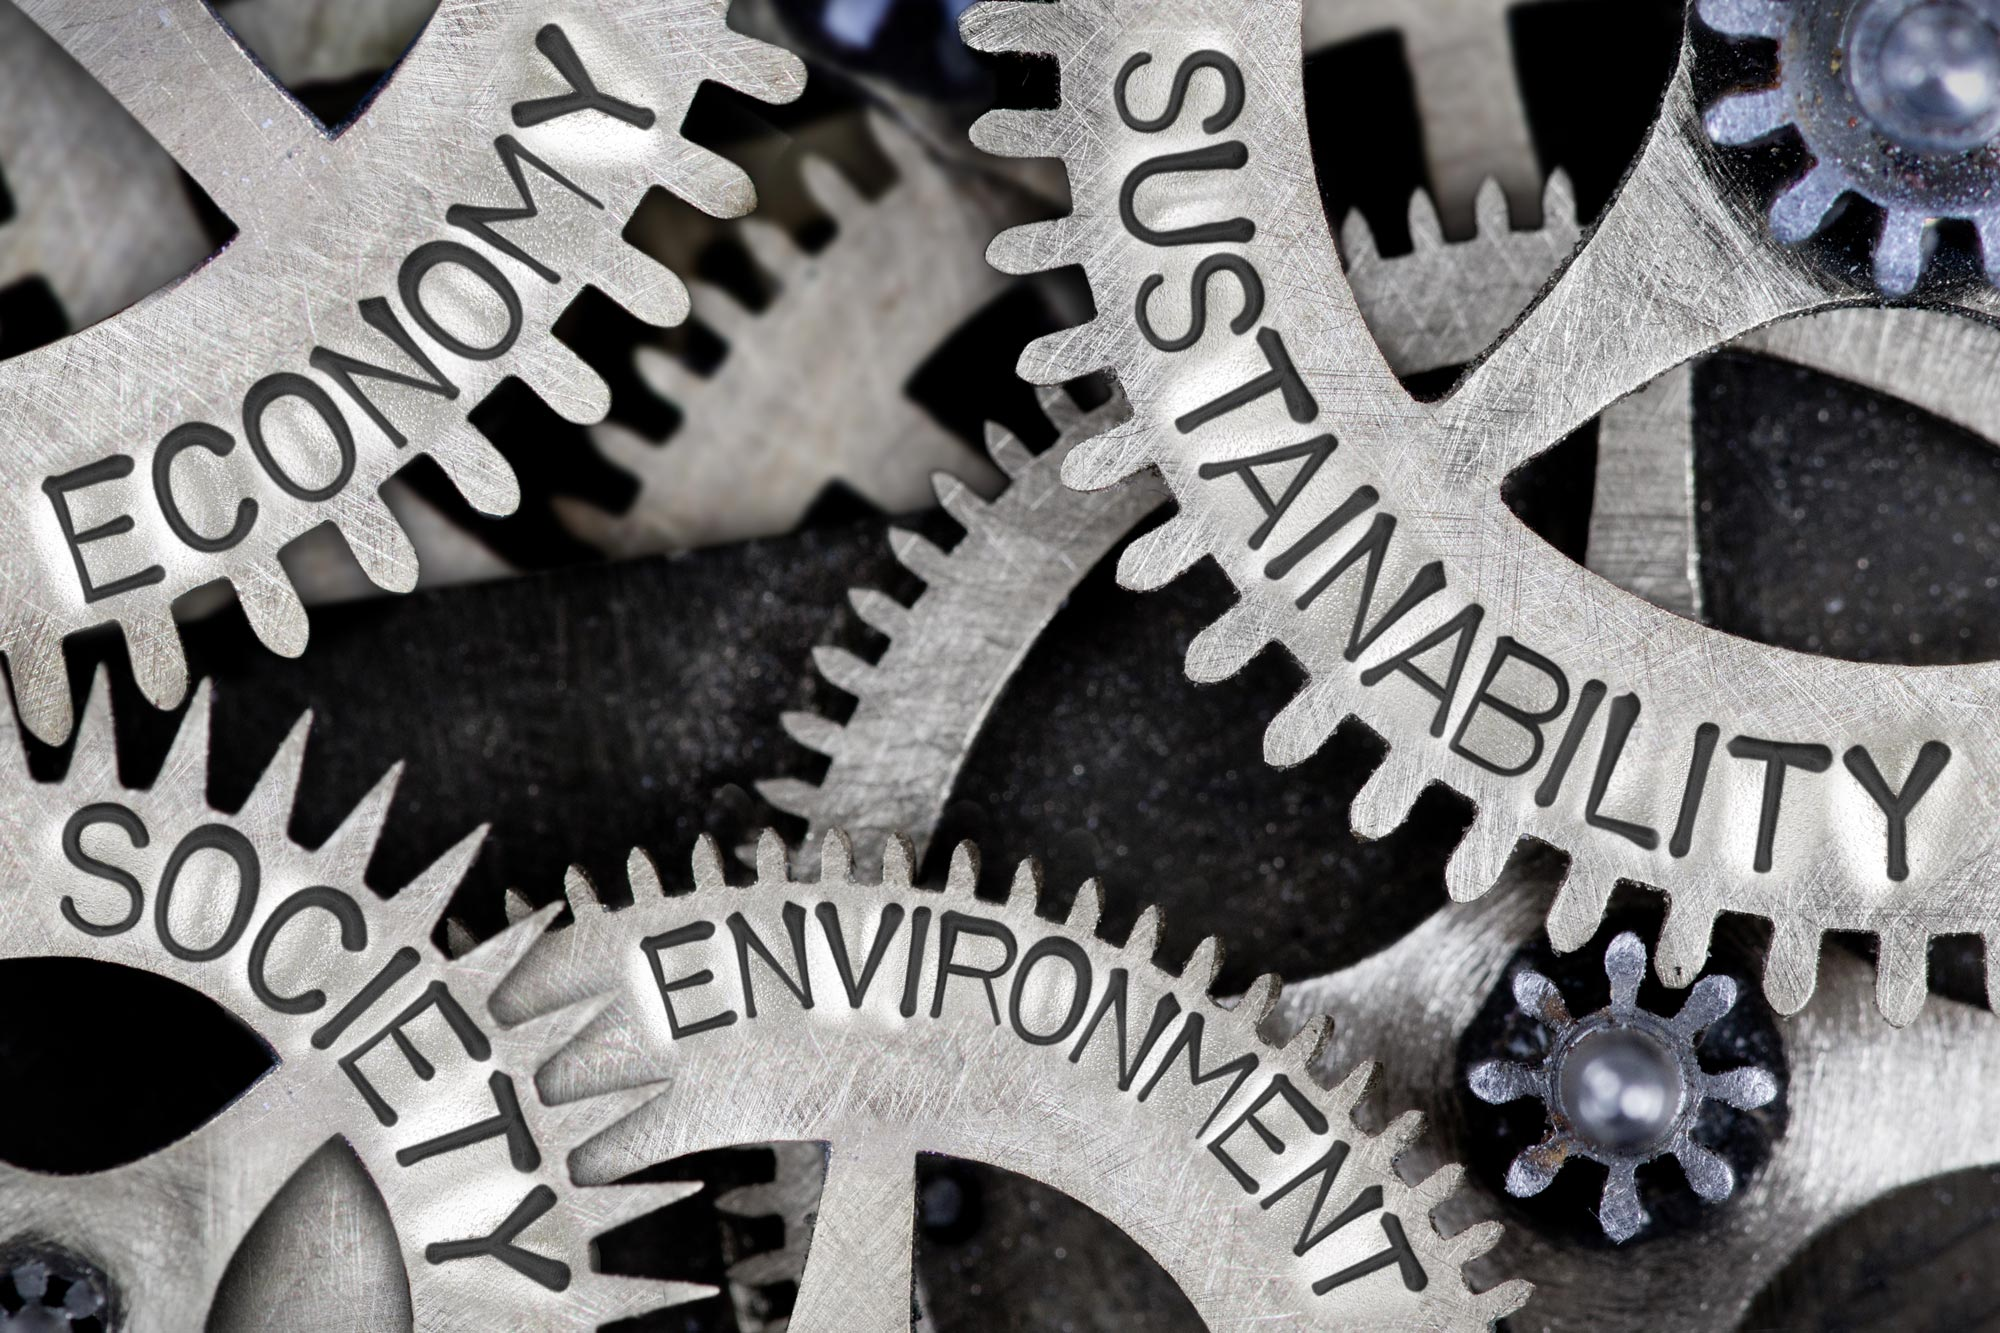 Why sustainable manufacturing makes economic as well as ethical sense